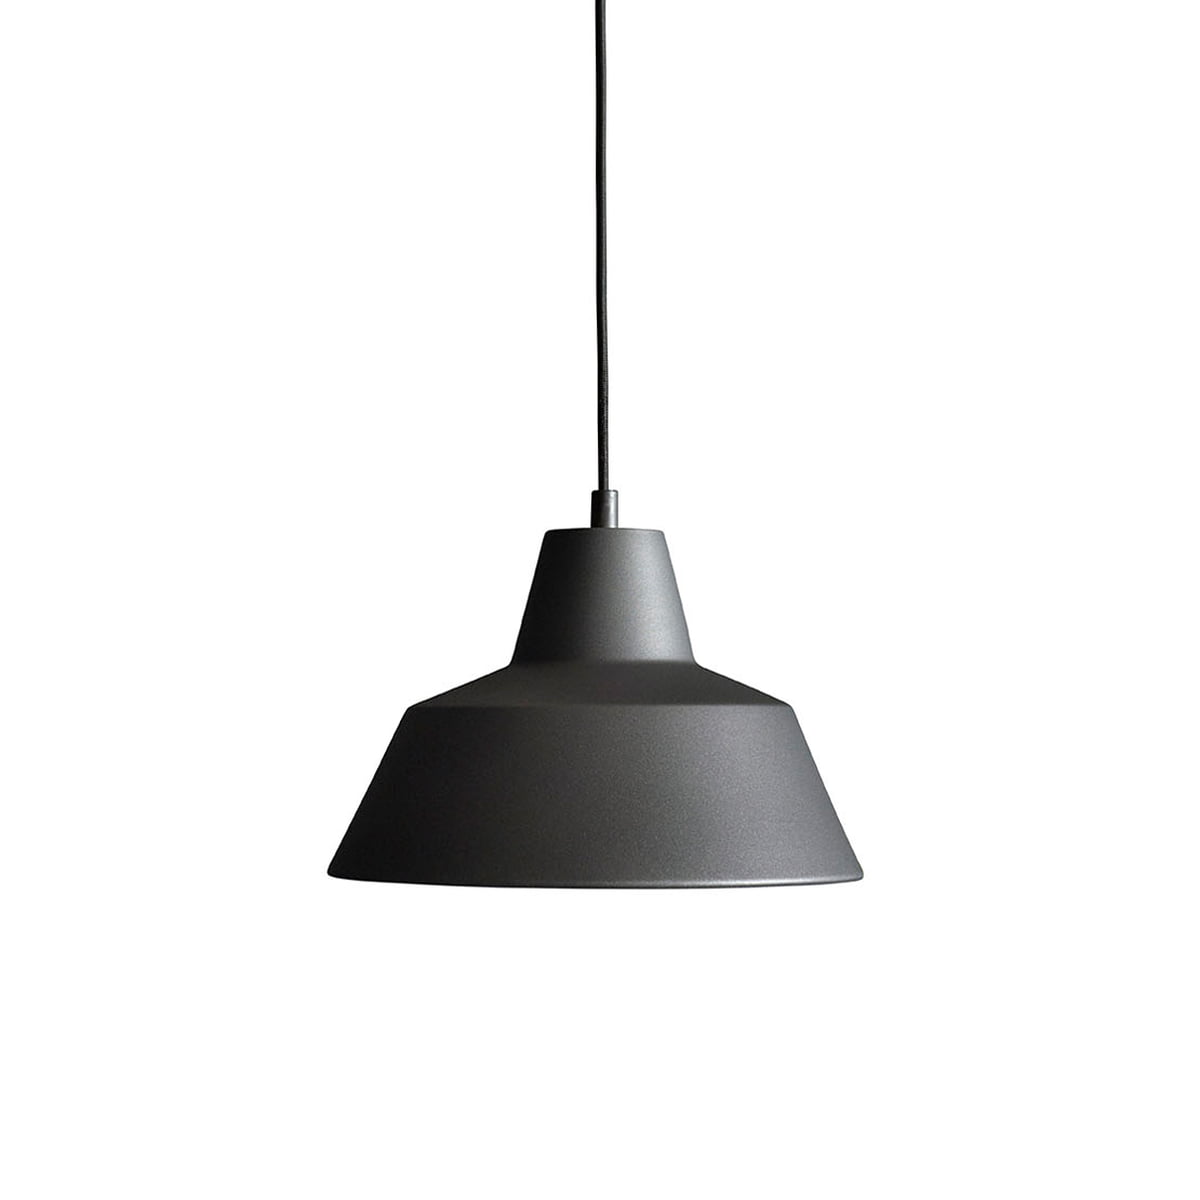 Goede Industrial lamp made of aluminium | Made by Hand LU-89